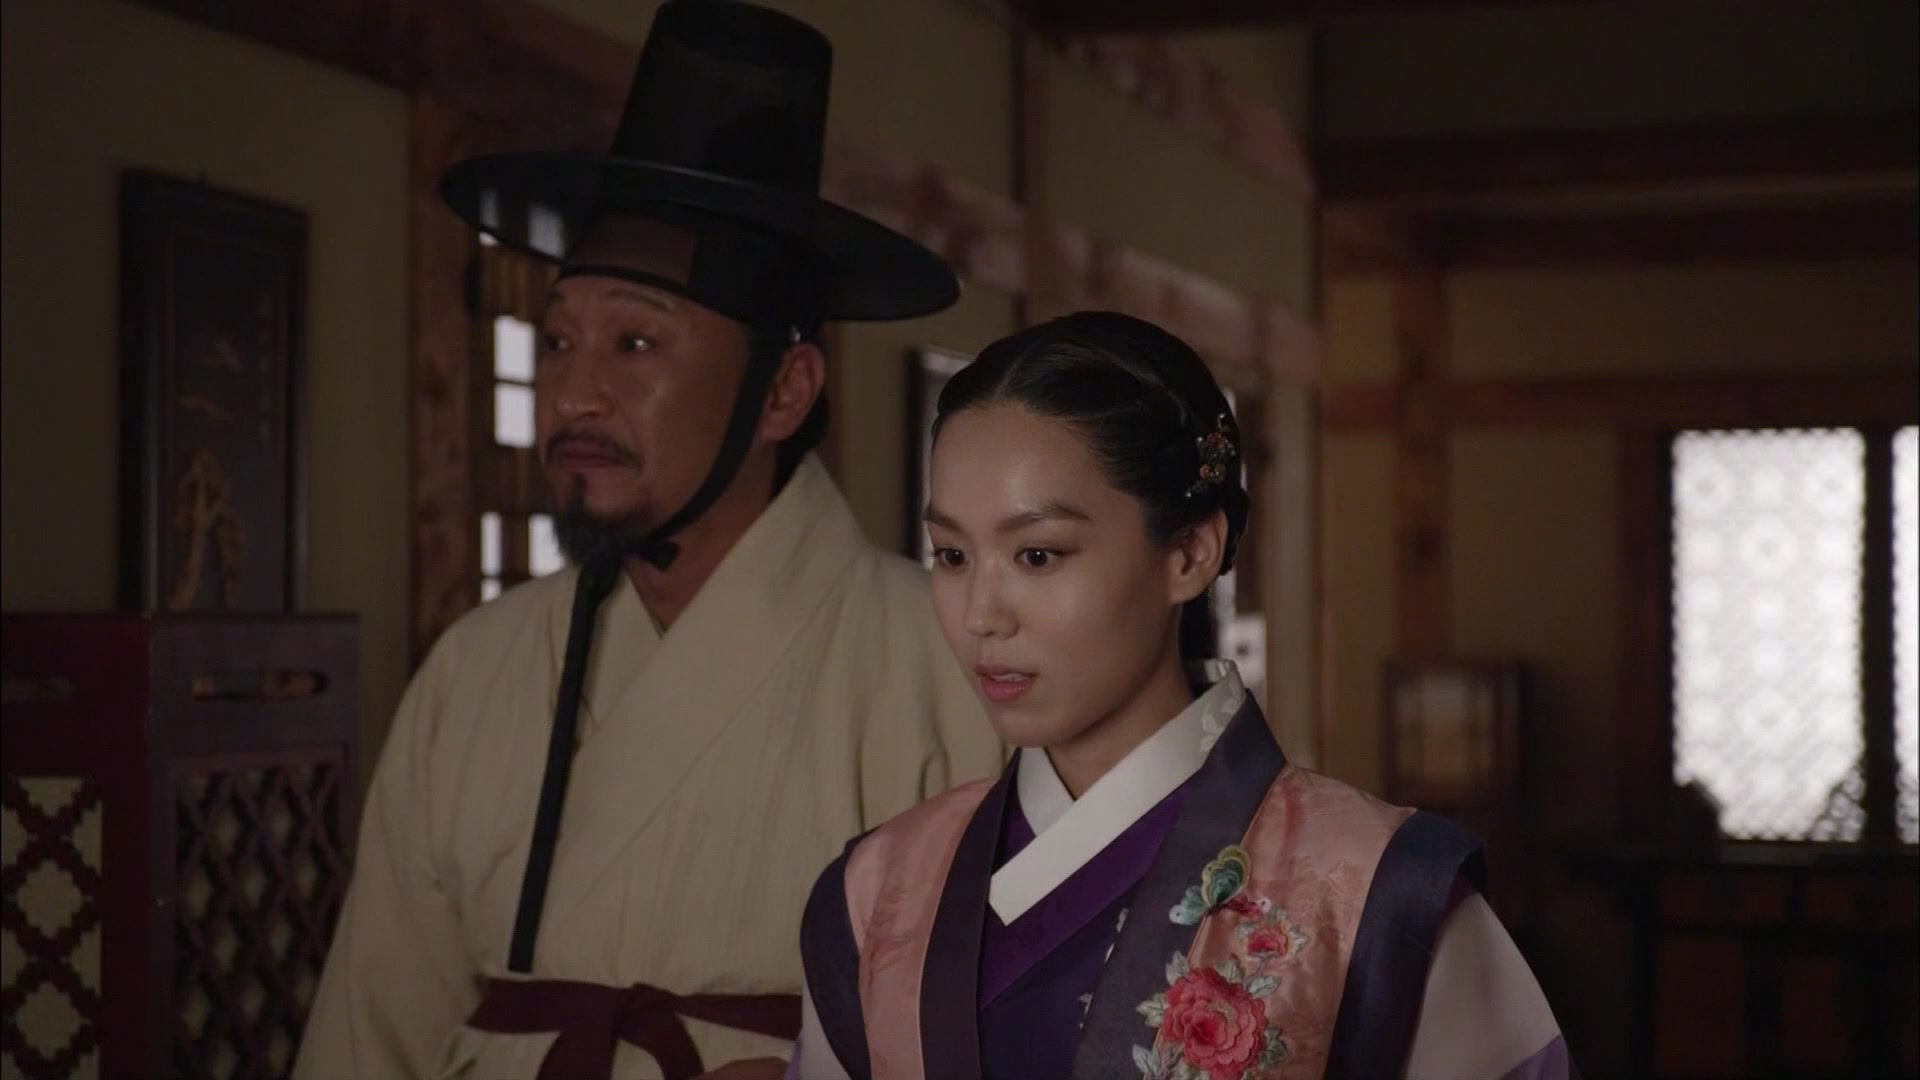 The King's Face Episode 6